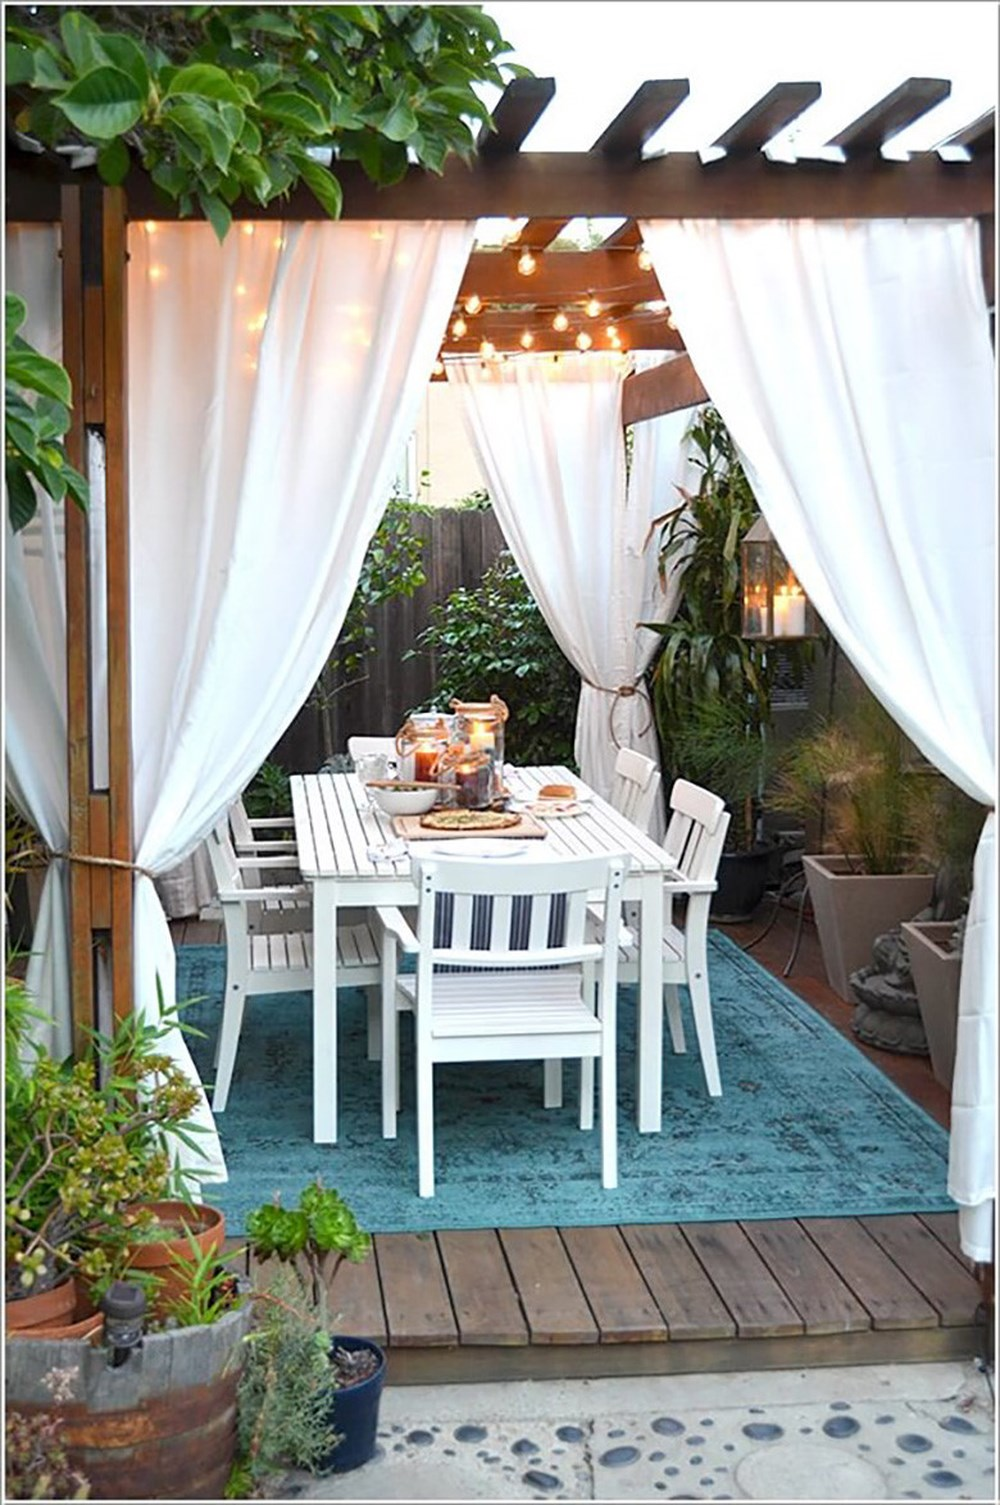 5 Ideas For the Perfect Al Fresco Dining Area 05 Al Fresco Dining Area 5 Ideas For the Perfect Al Fresco Dining Area 5 Ideas For the Perfect Al Fresco Dining Area 05